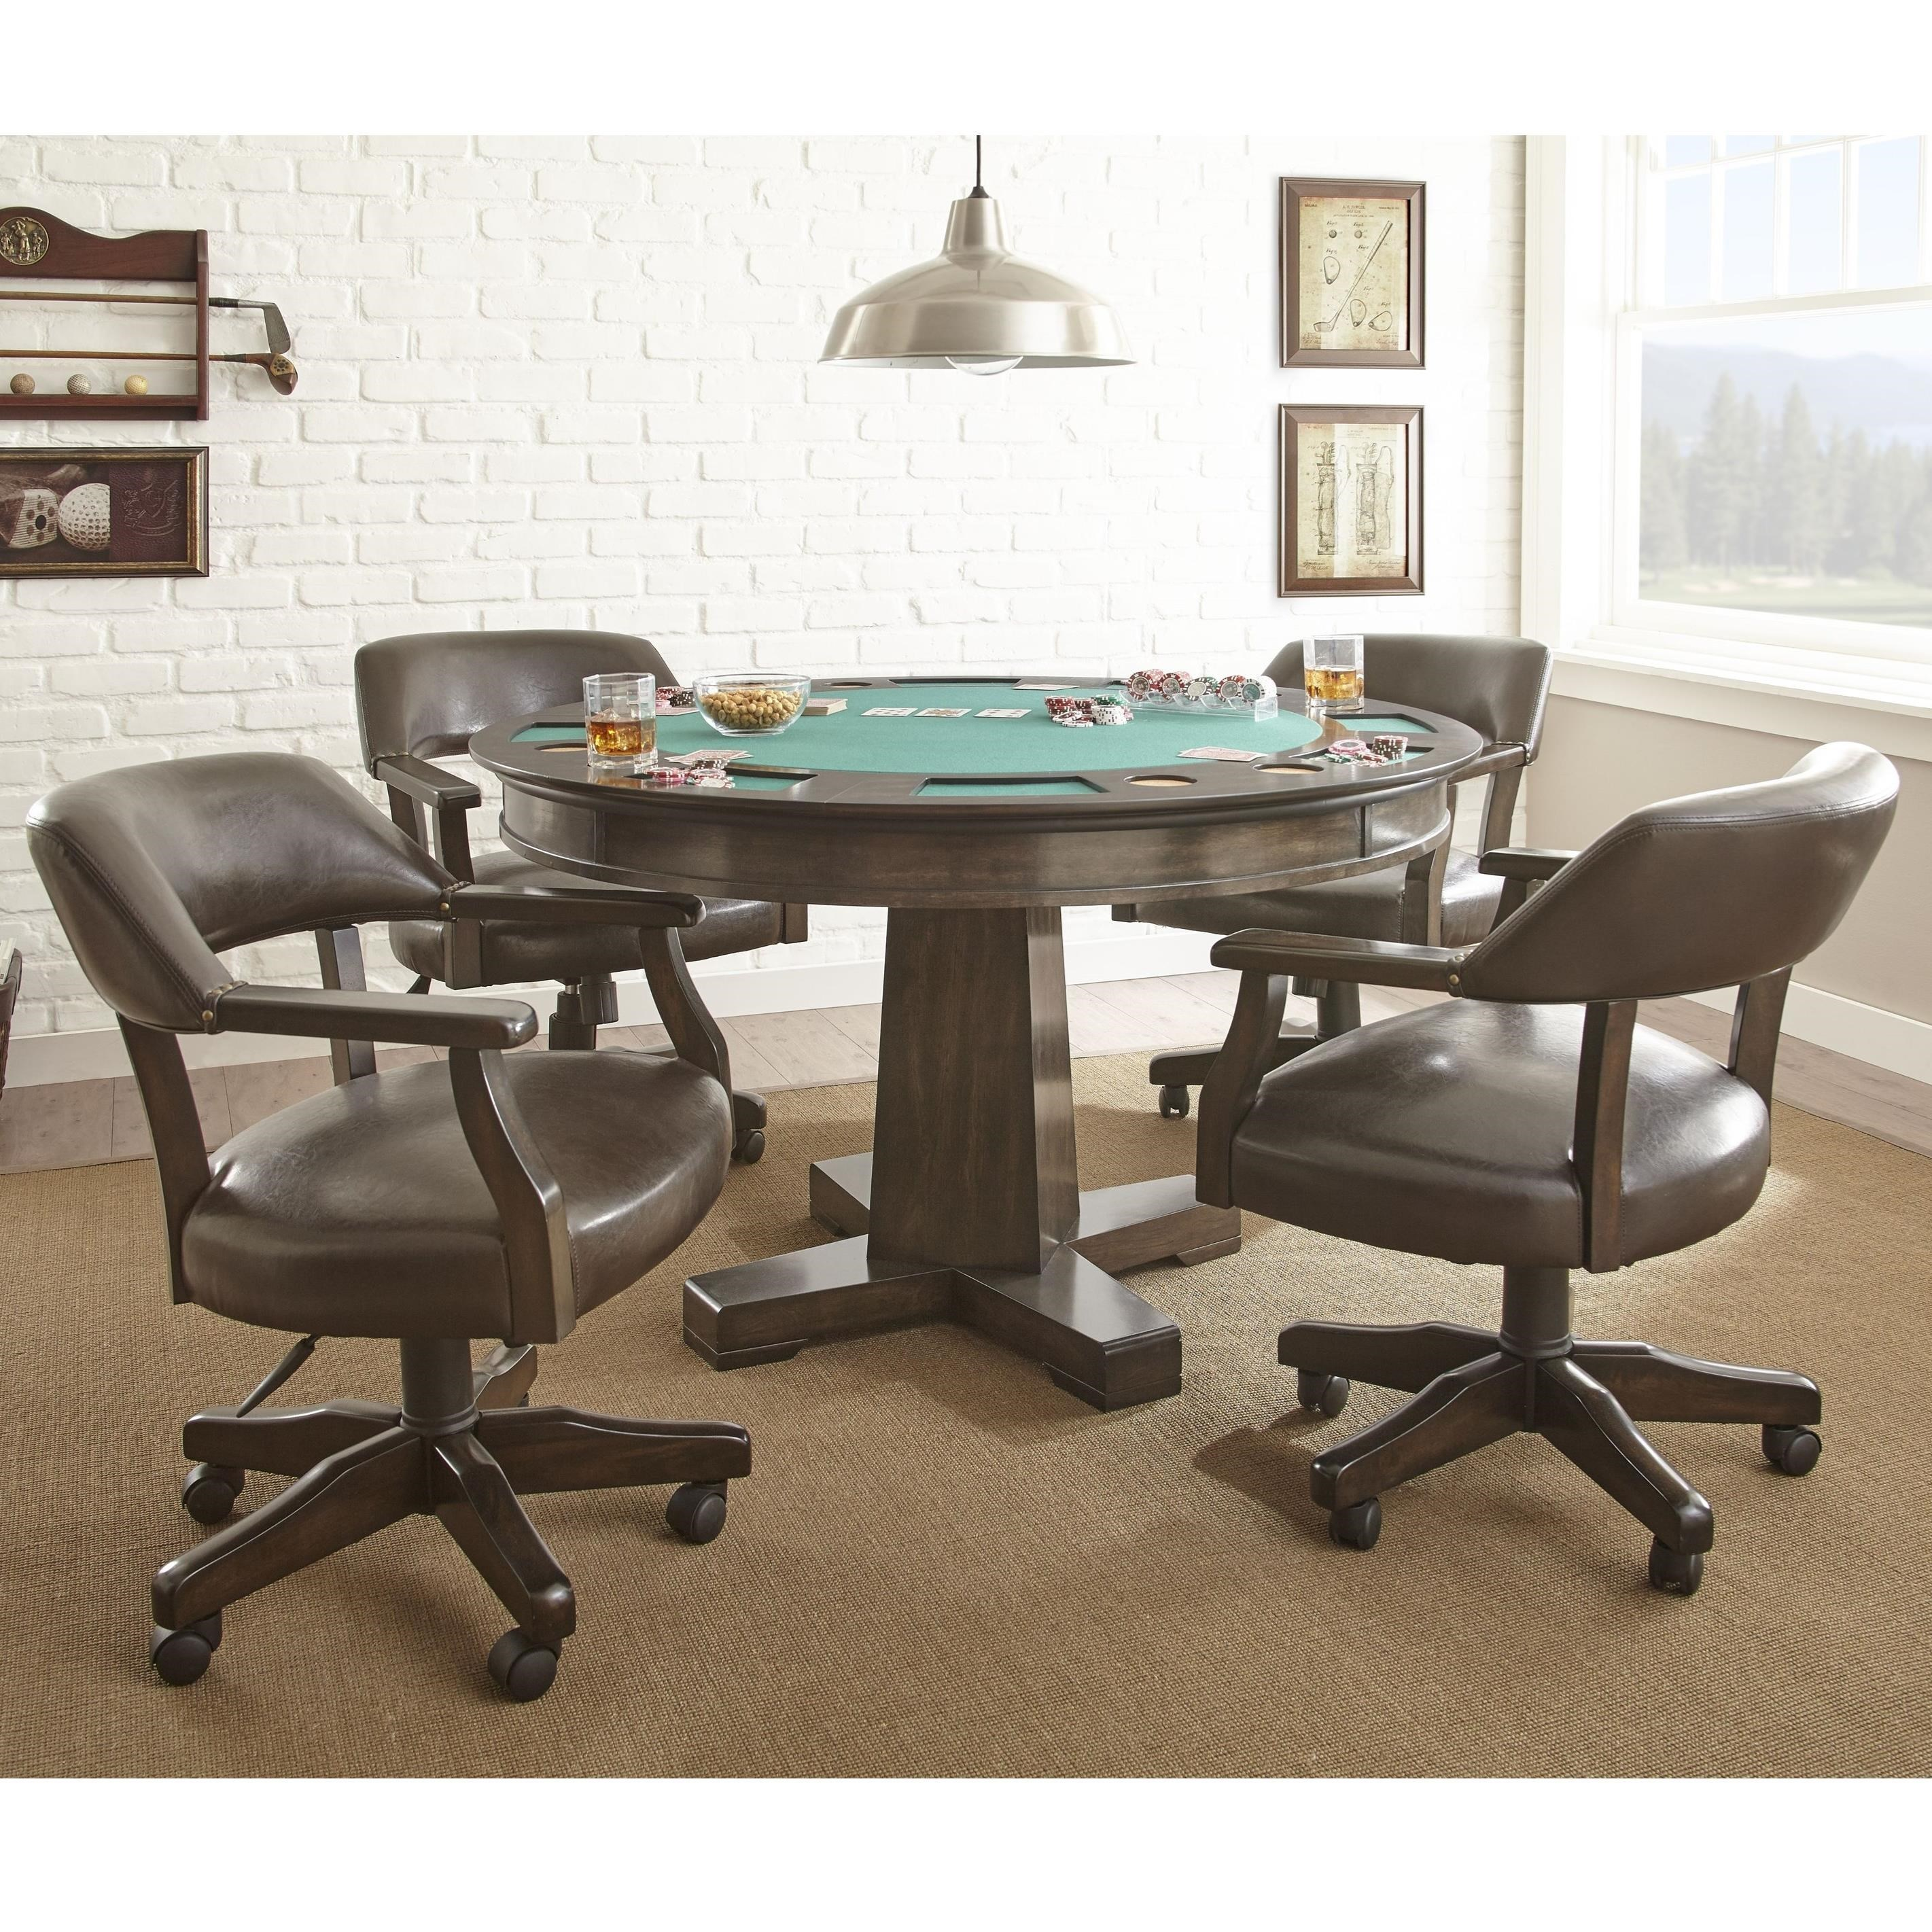 Steve Silver Ruby Game Table Set With 2 In 1 Table